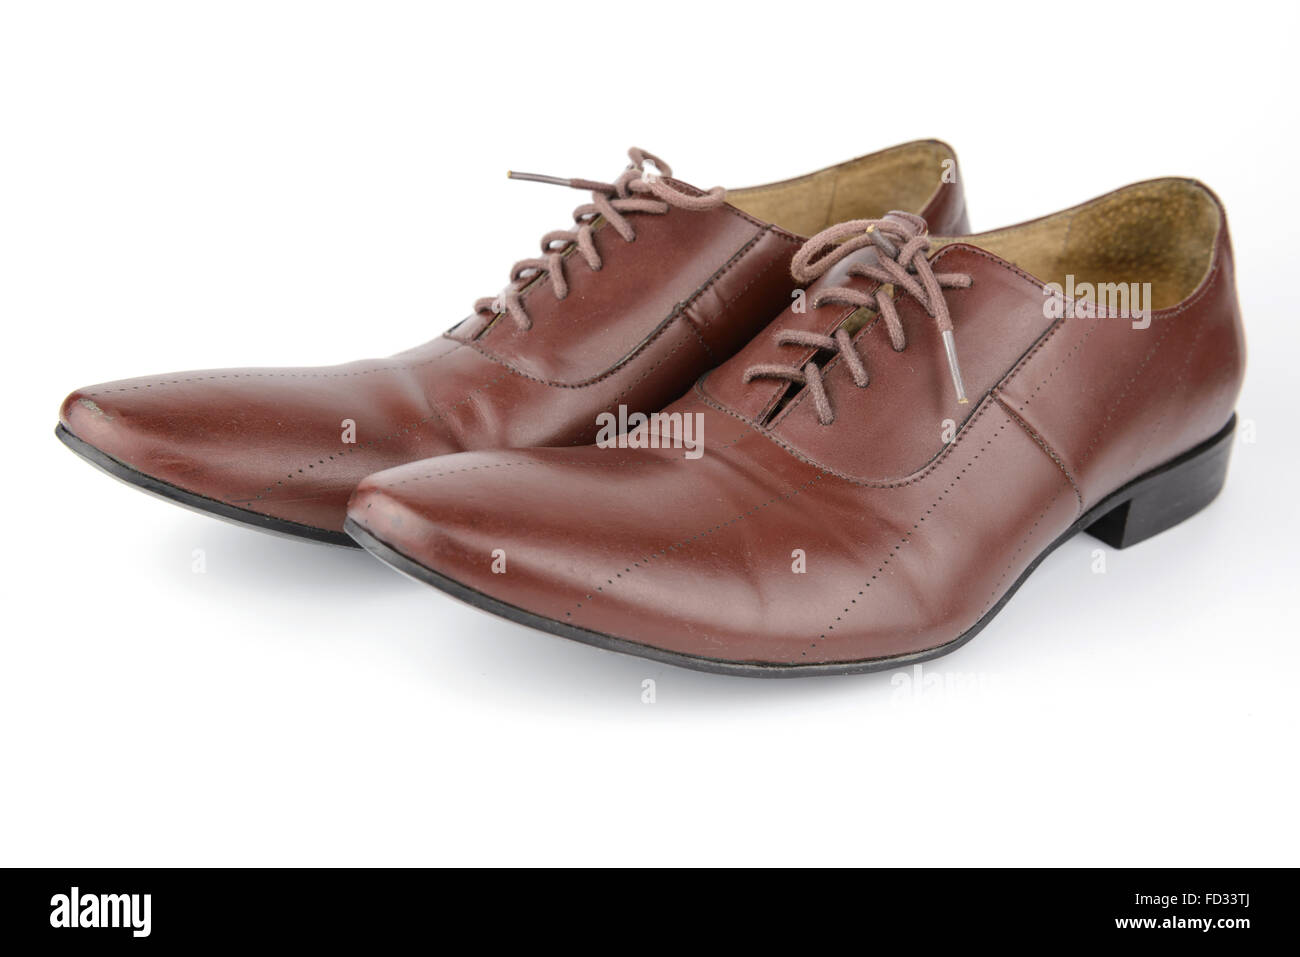 Men accessories, Brown leather medallion toe wholecuts shoes, isolated white background - Stock Image